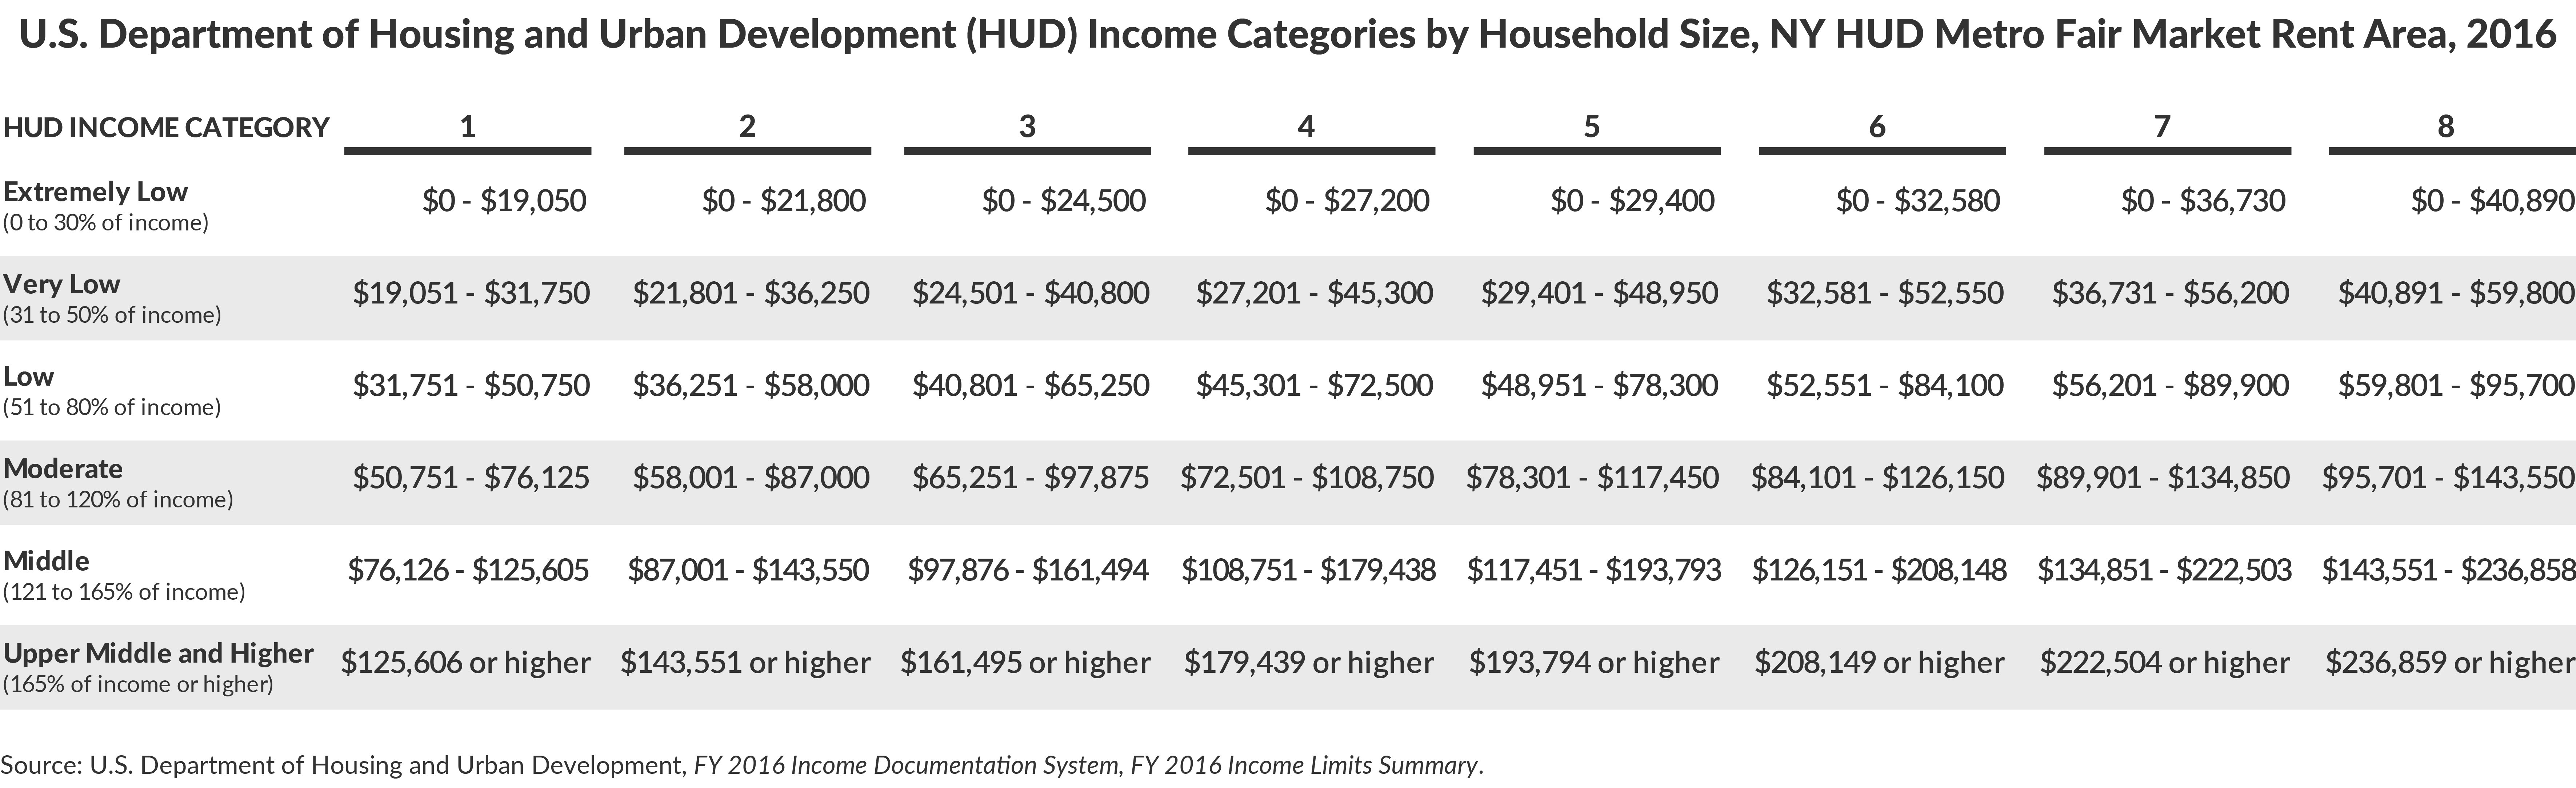 U.S. Department of Housing and Urban Development (HUD) Income Categories by Household Size, NY HUD Metro Fair Market Rent Area, 2016